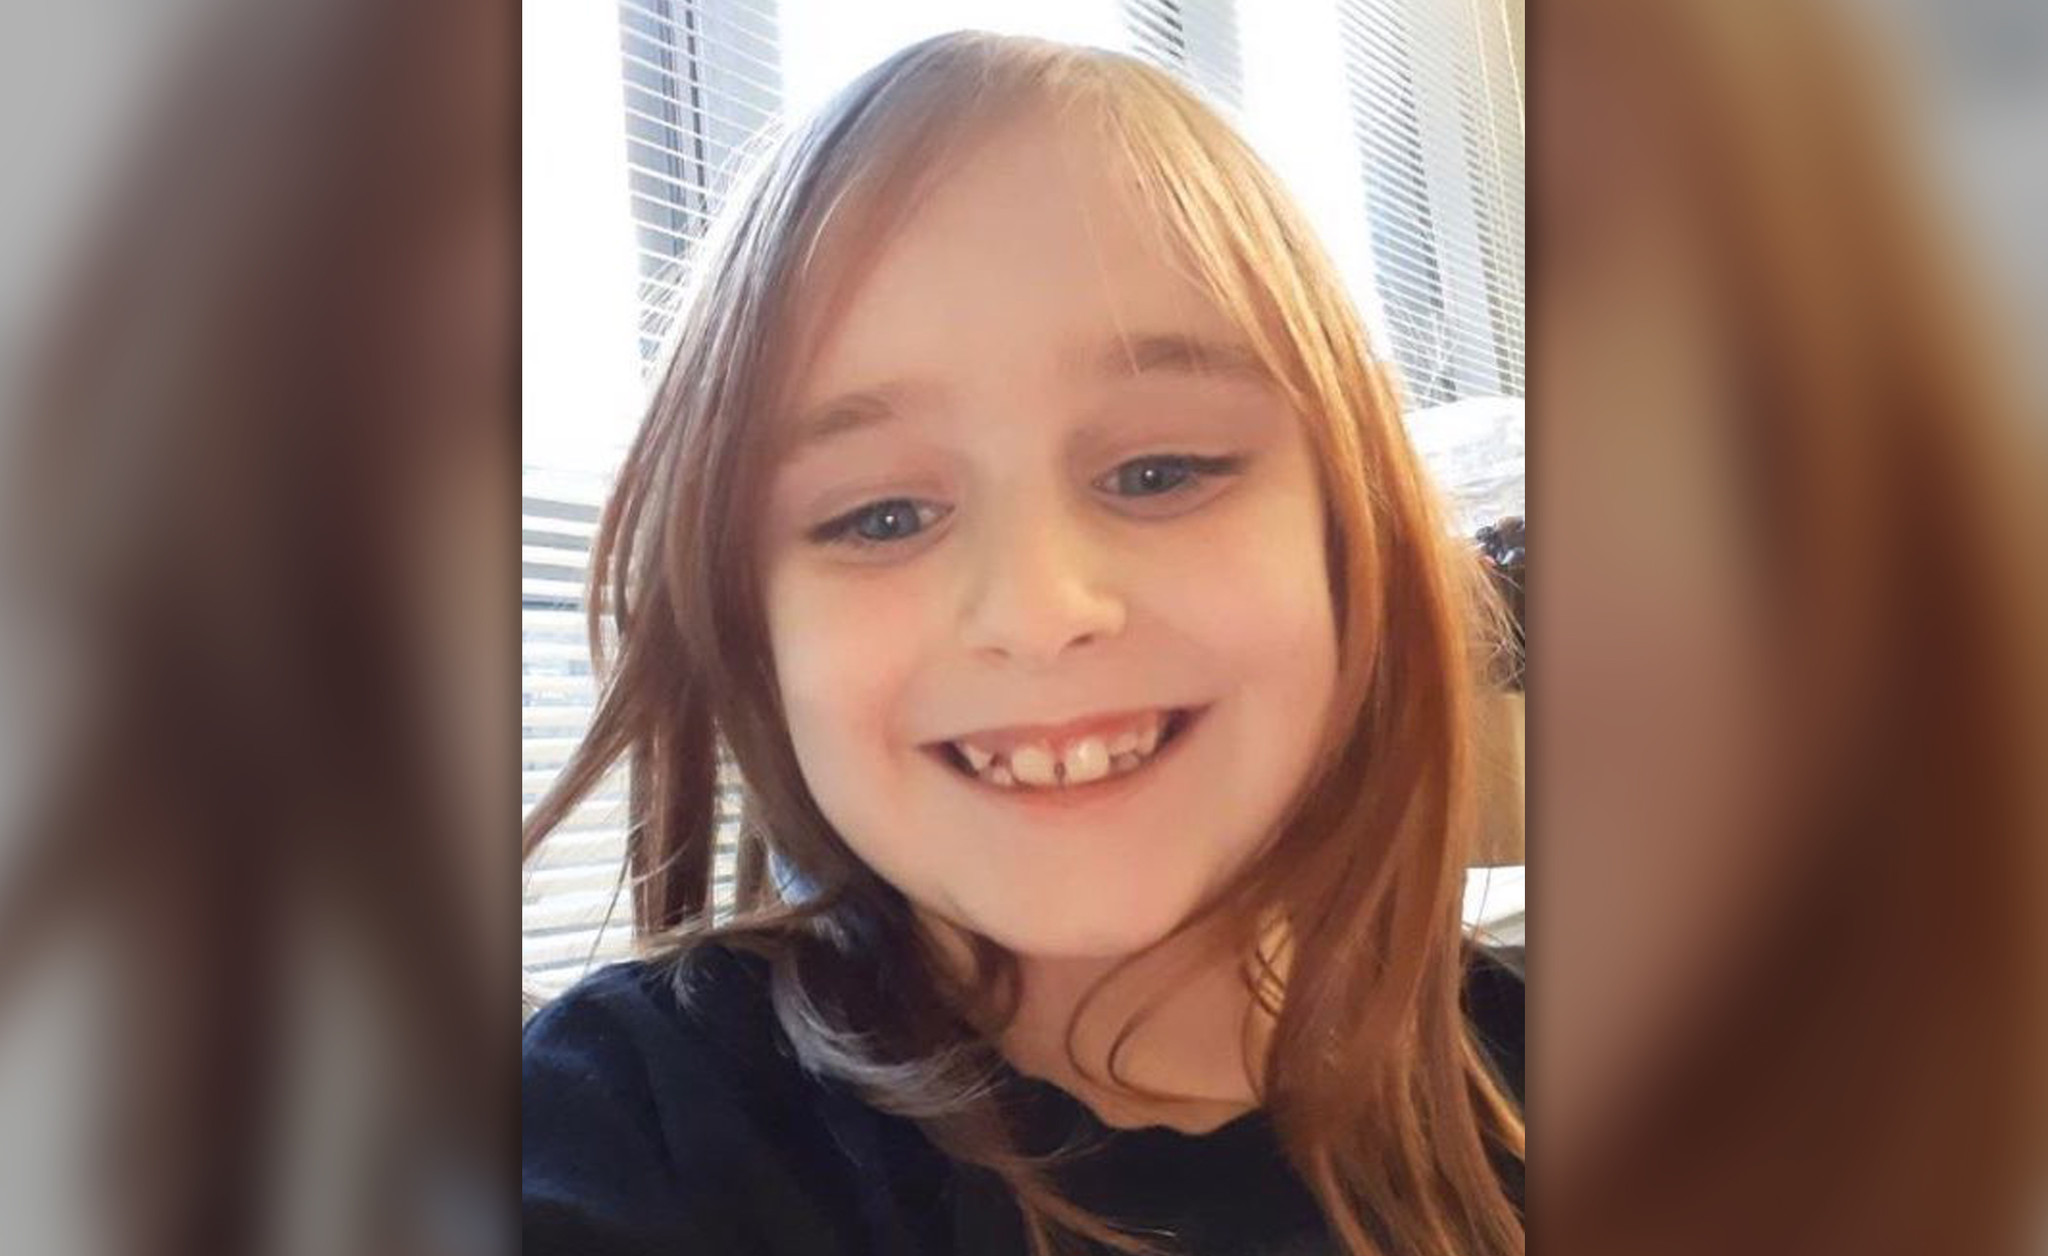 6-year-old girl missing after last seen playing outside South Carolina home